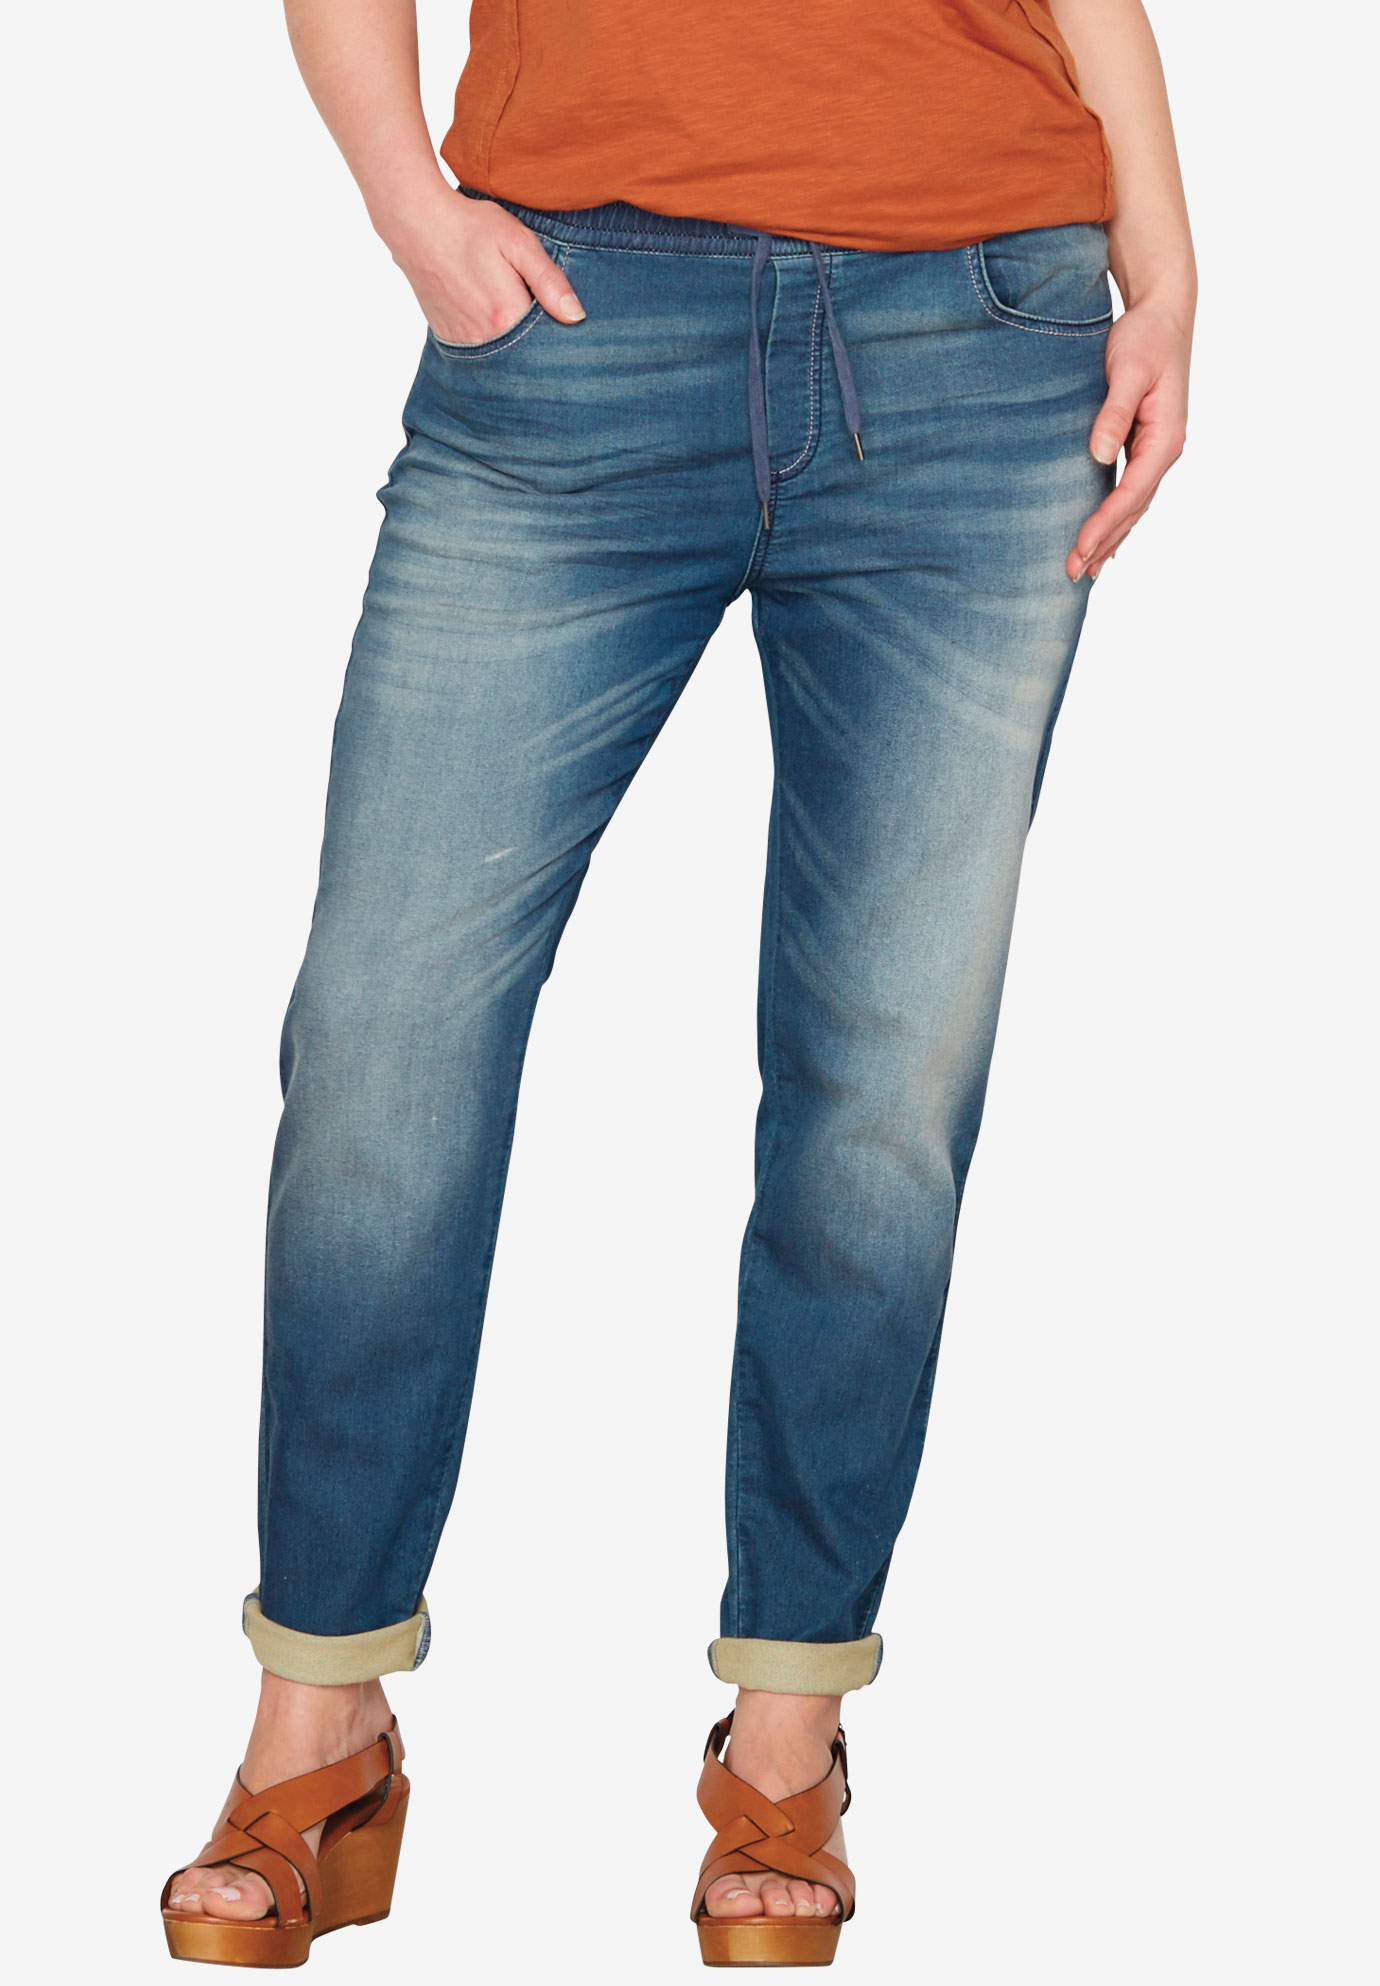 Pull-On Boyfriend Jean by Castaluna,